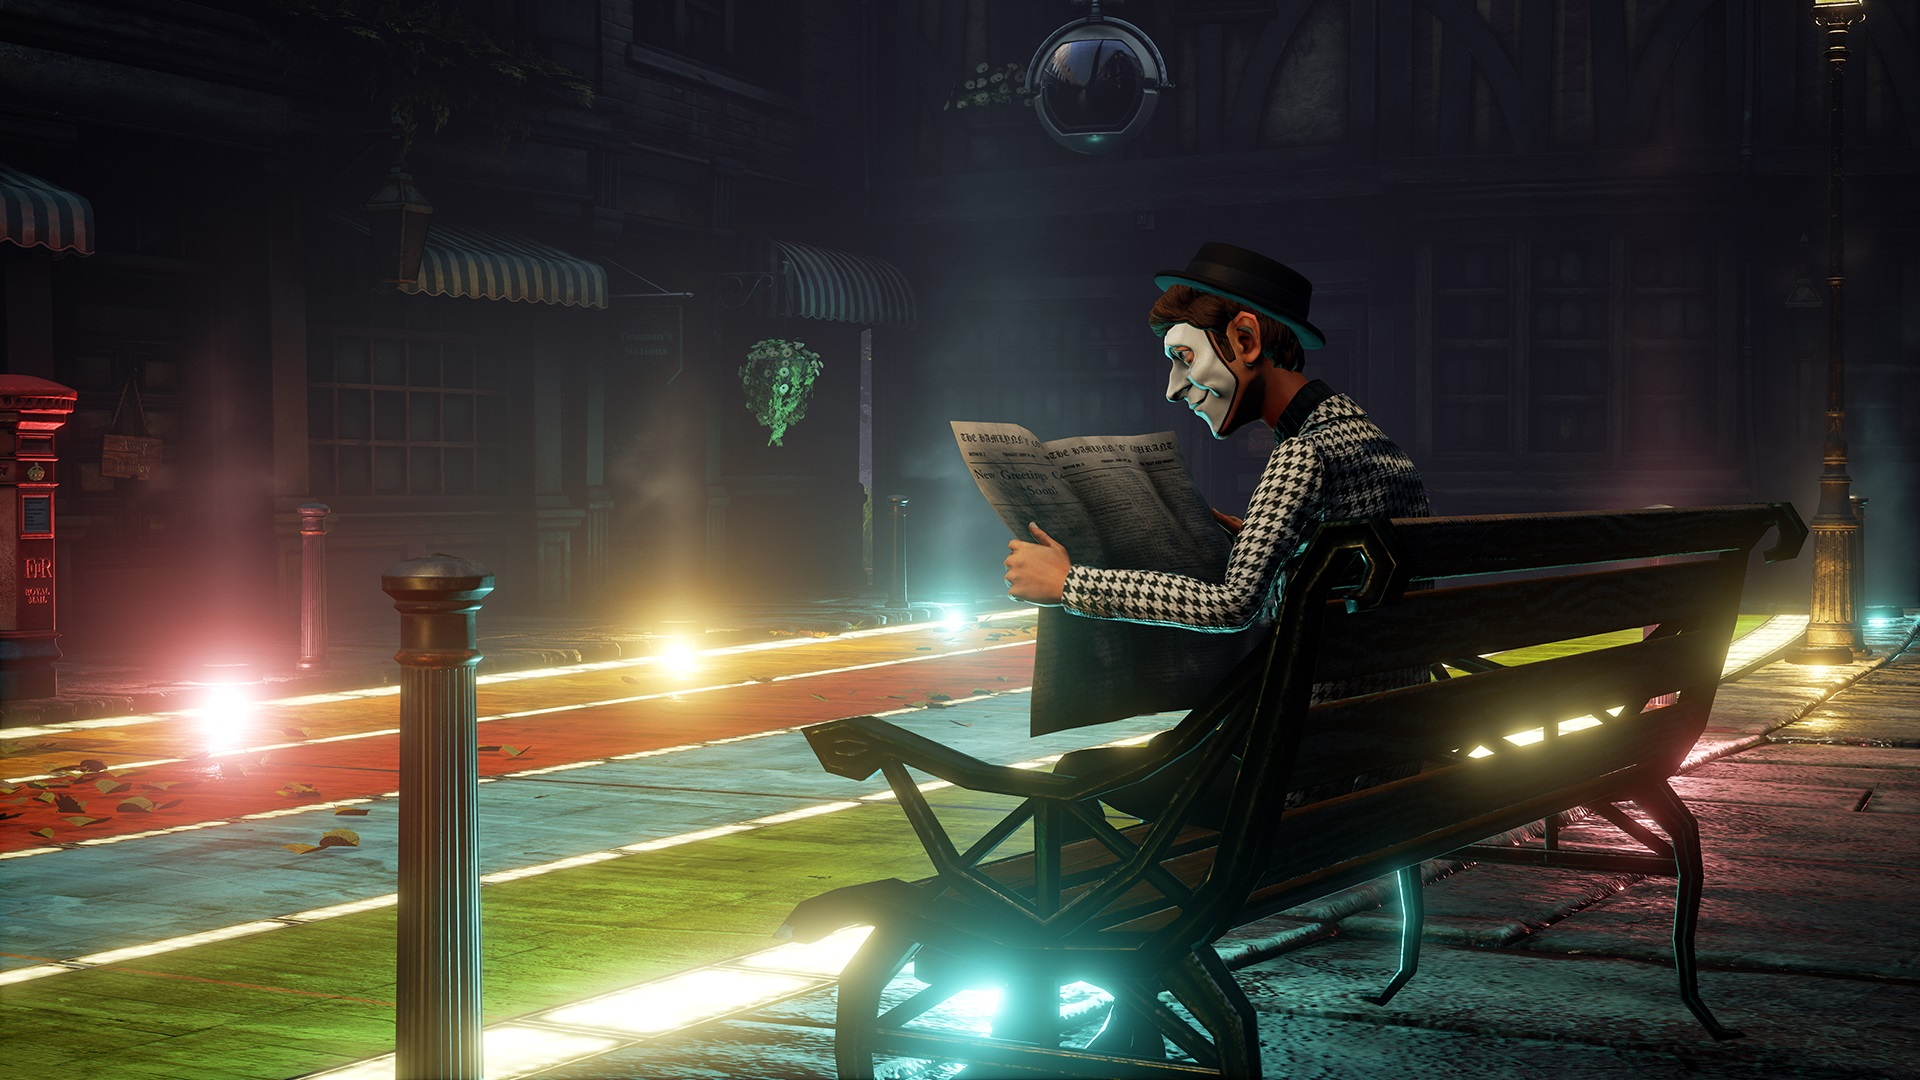 Jack And Sally Wallpaper Hd We Happy Few Is About Drugs And Nazis And Whatever You